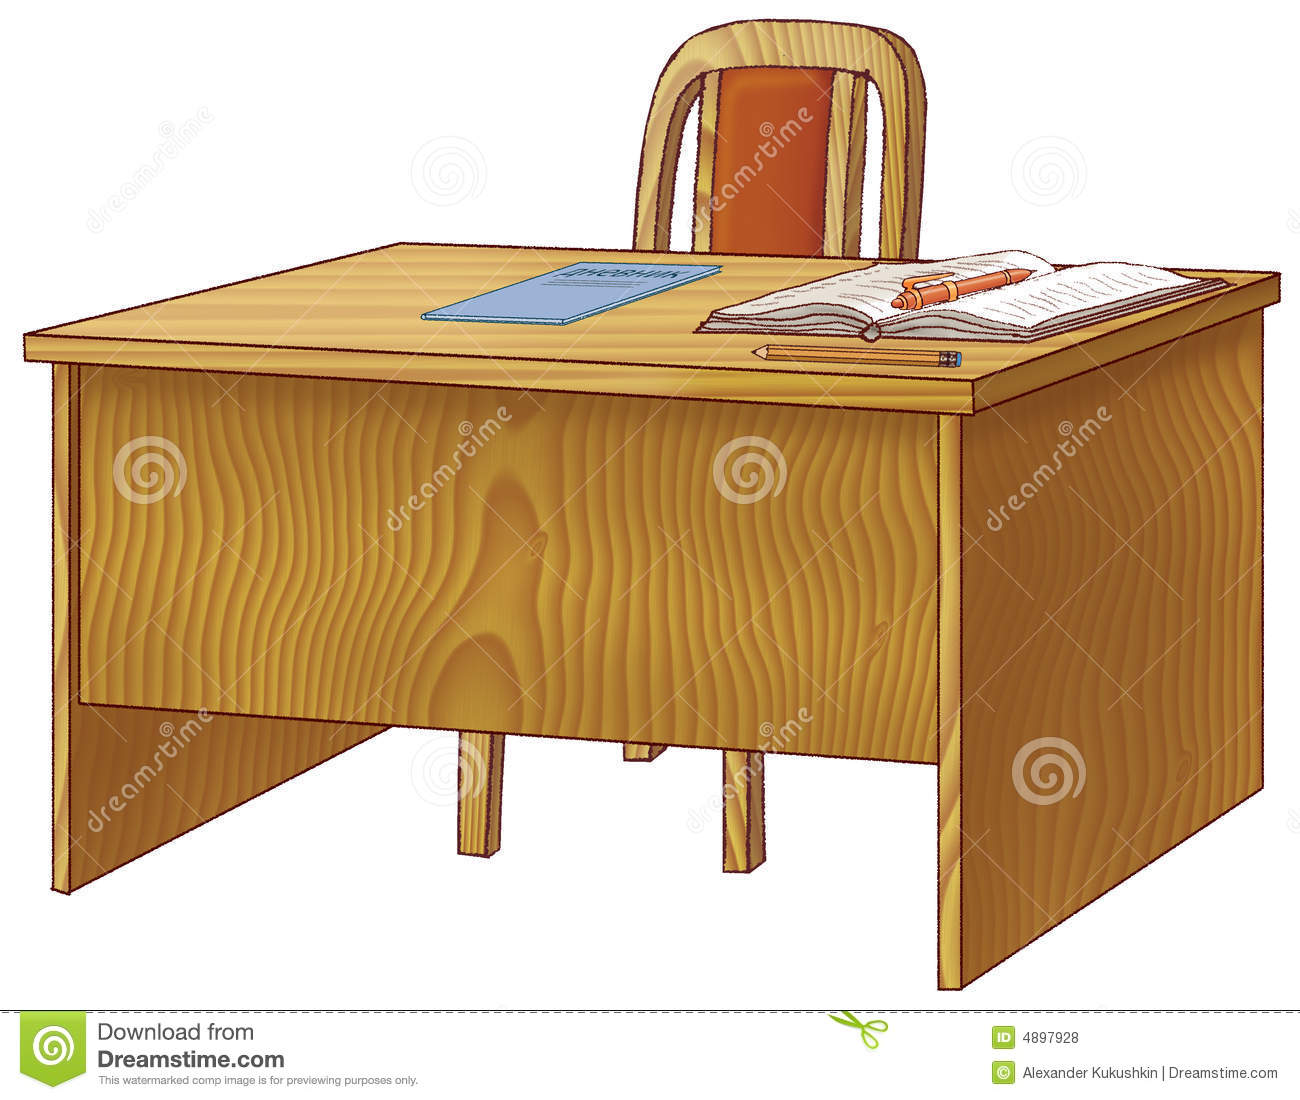 teacher table and chair patio chairs with footrests school teachers stock illustration of